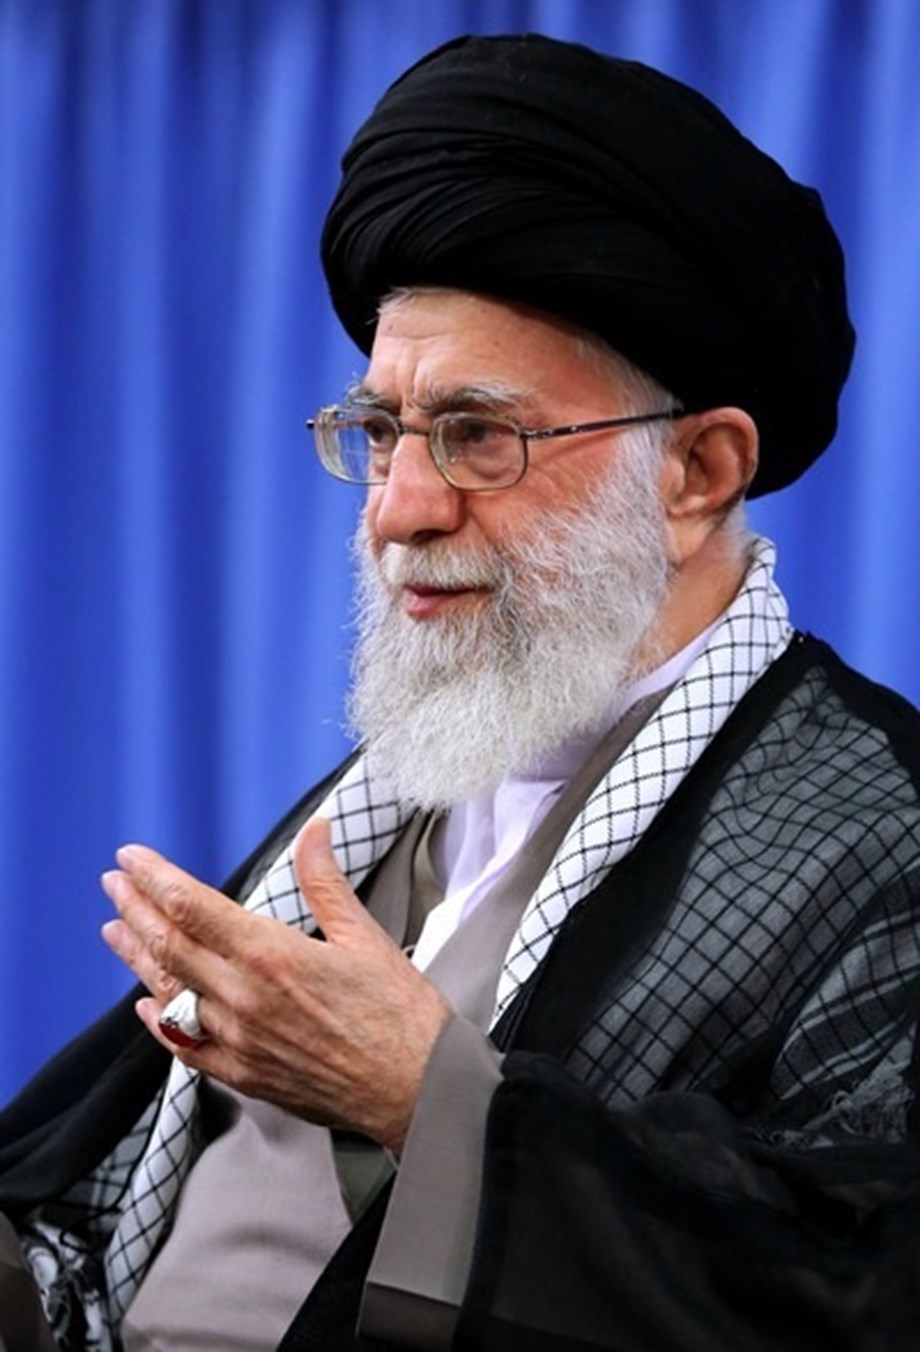 Iran President Ali Khamenei says negotiations with America will only bring 'harm'